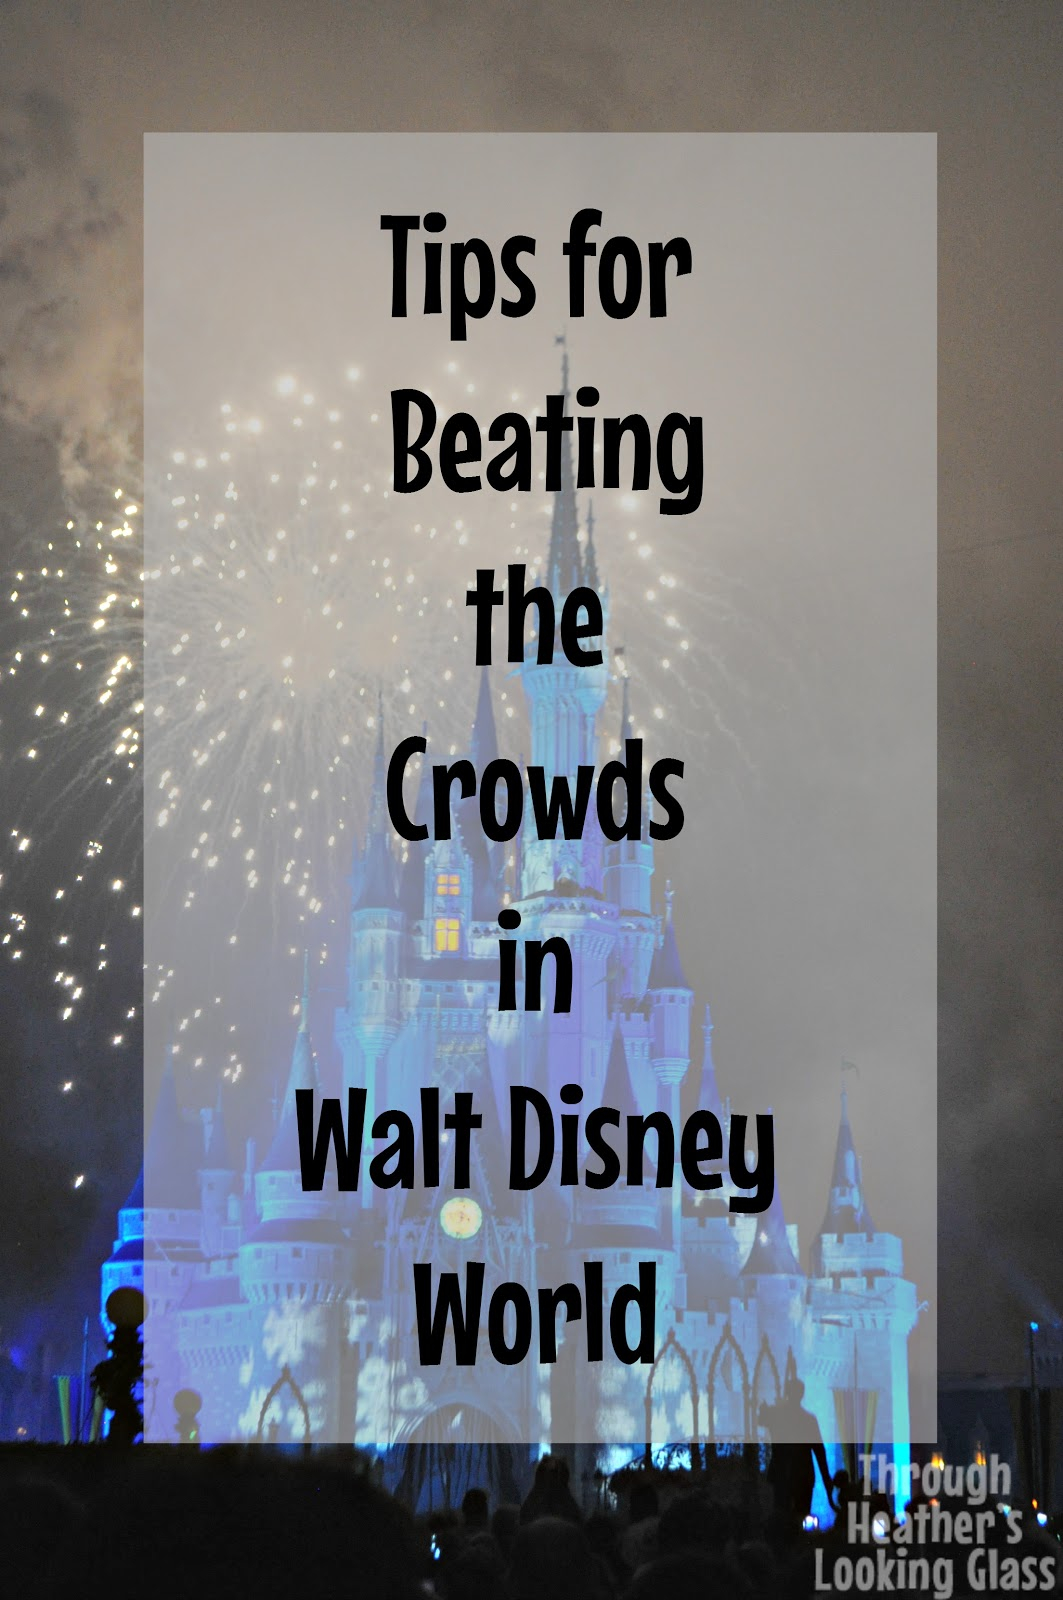 walt disney world, beat the crowds at walt disney world, disney world vacation planning, disney world vacation planning tips